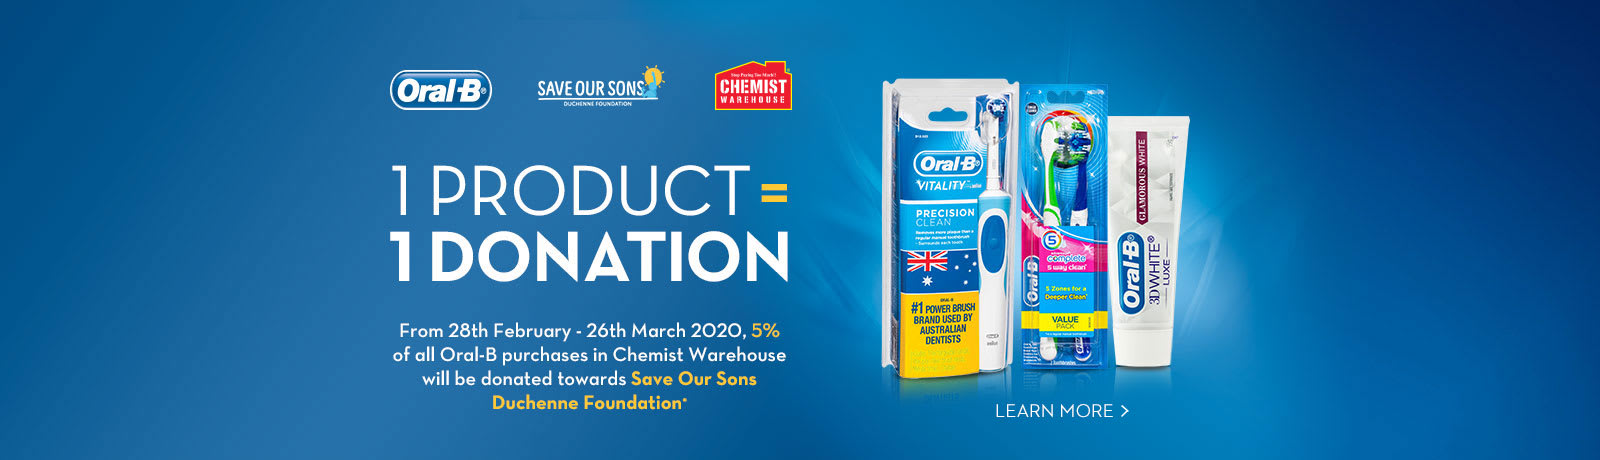 1 product 1 donation